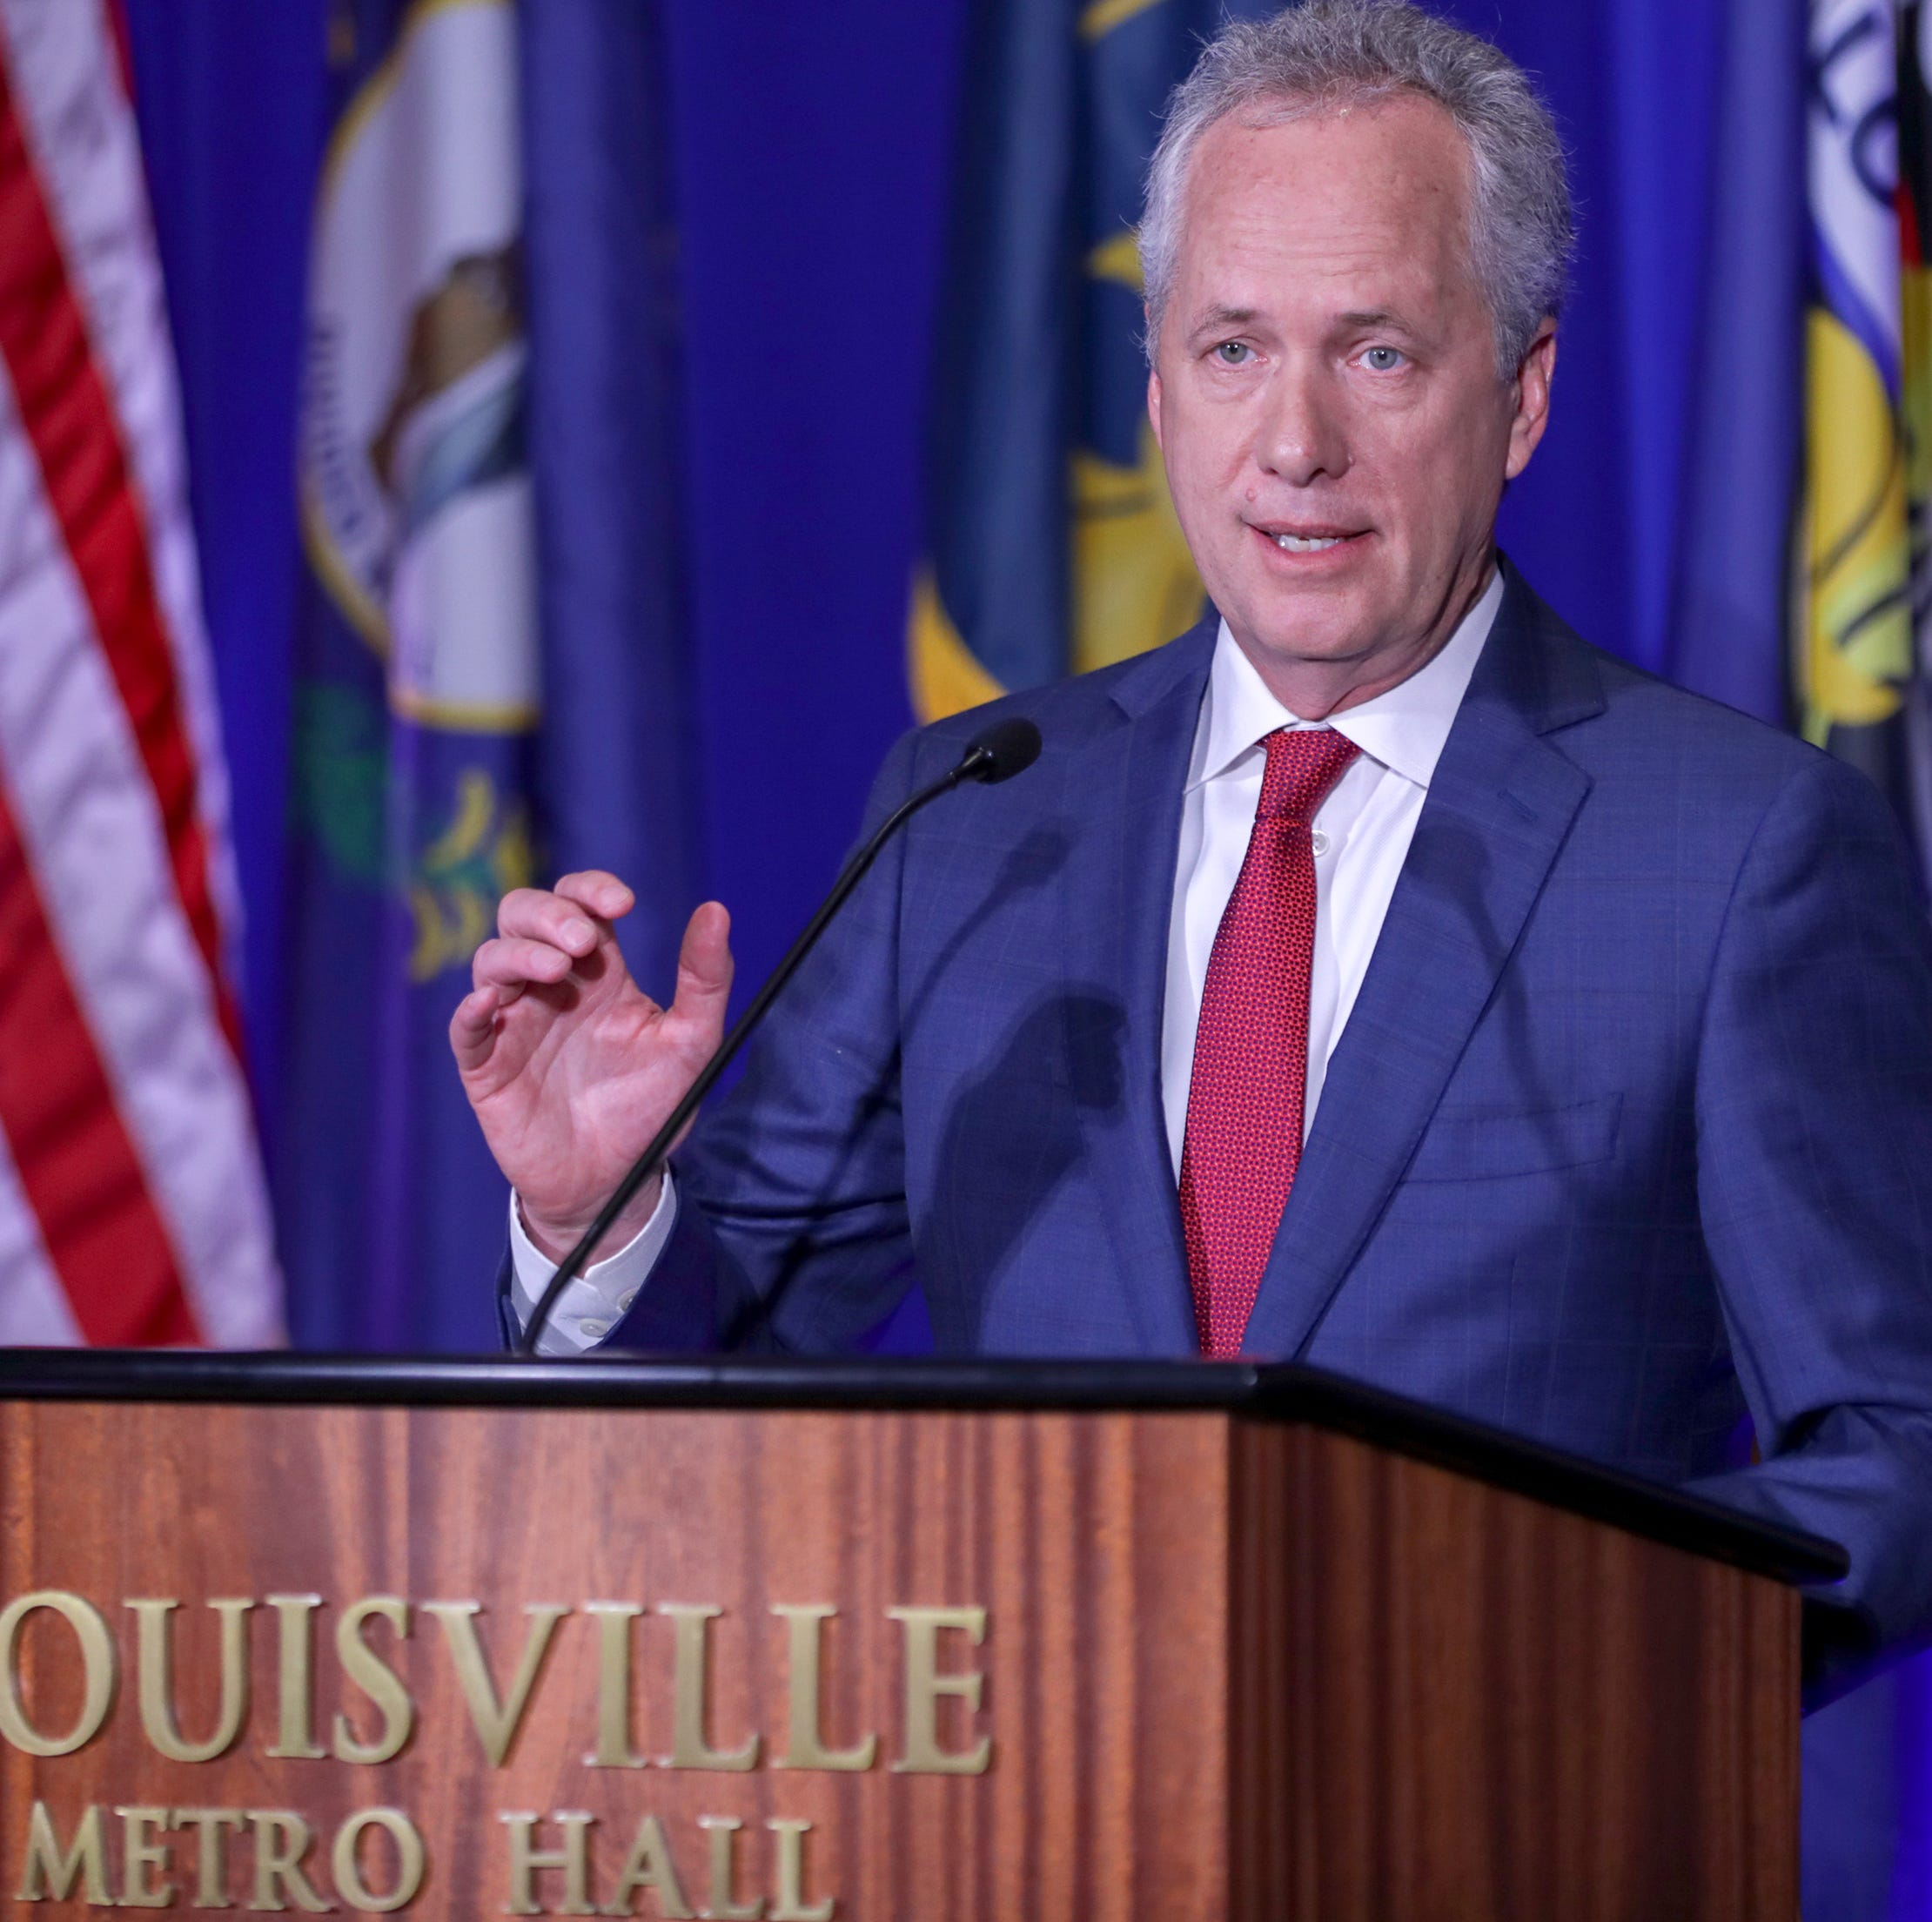 Louisville Metro Council, it's time for bold leadership. Approve Fischer's tax plan